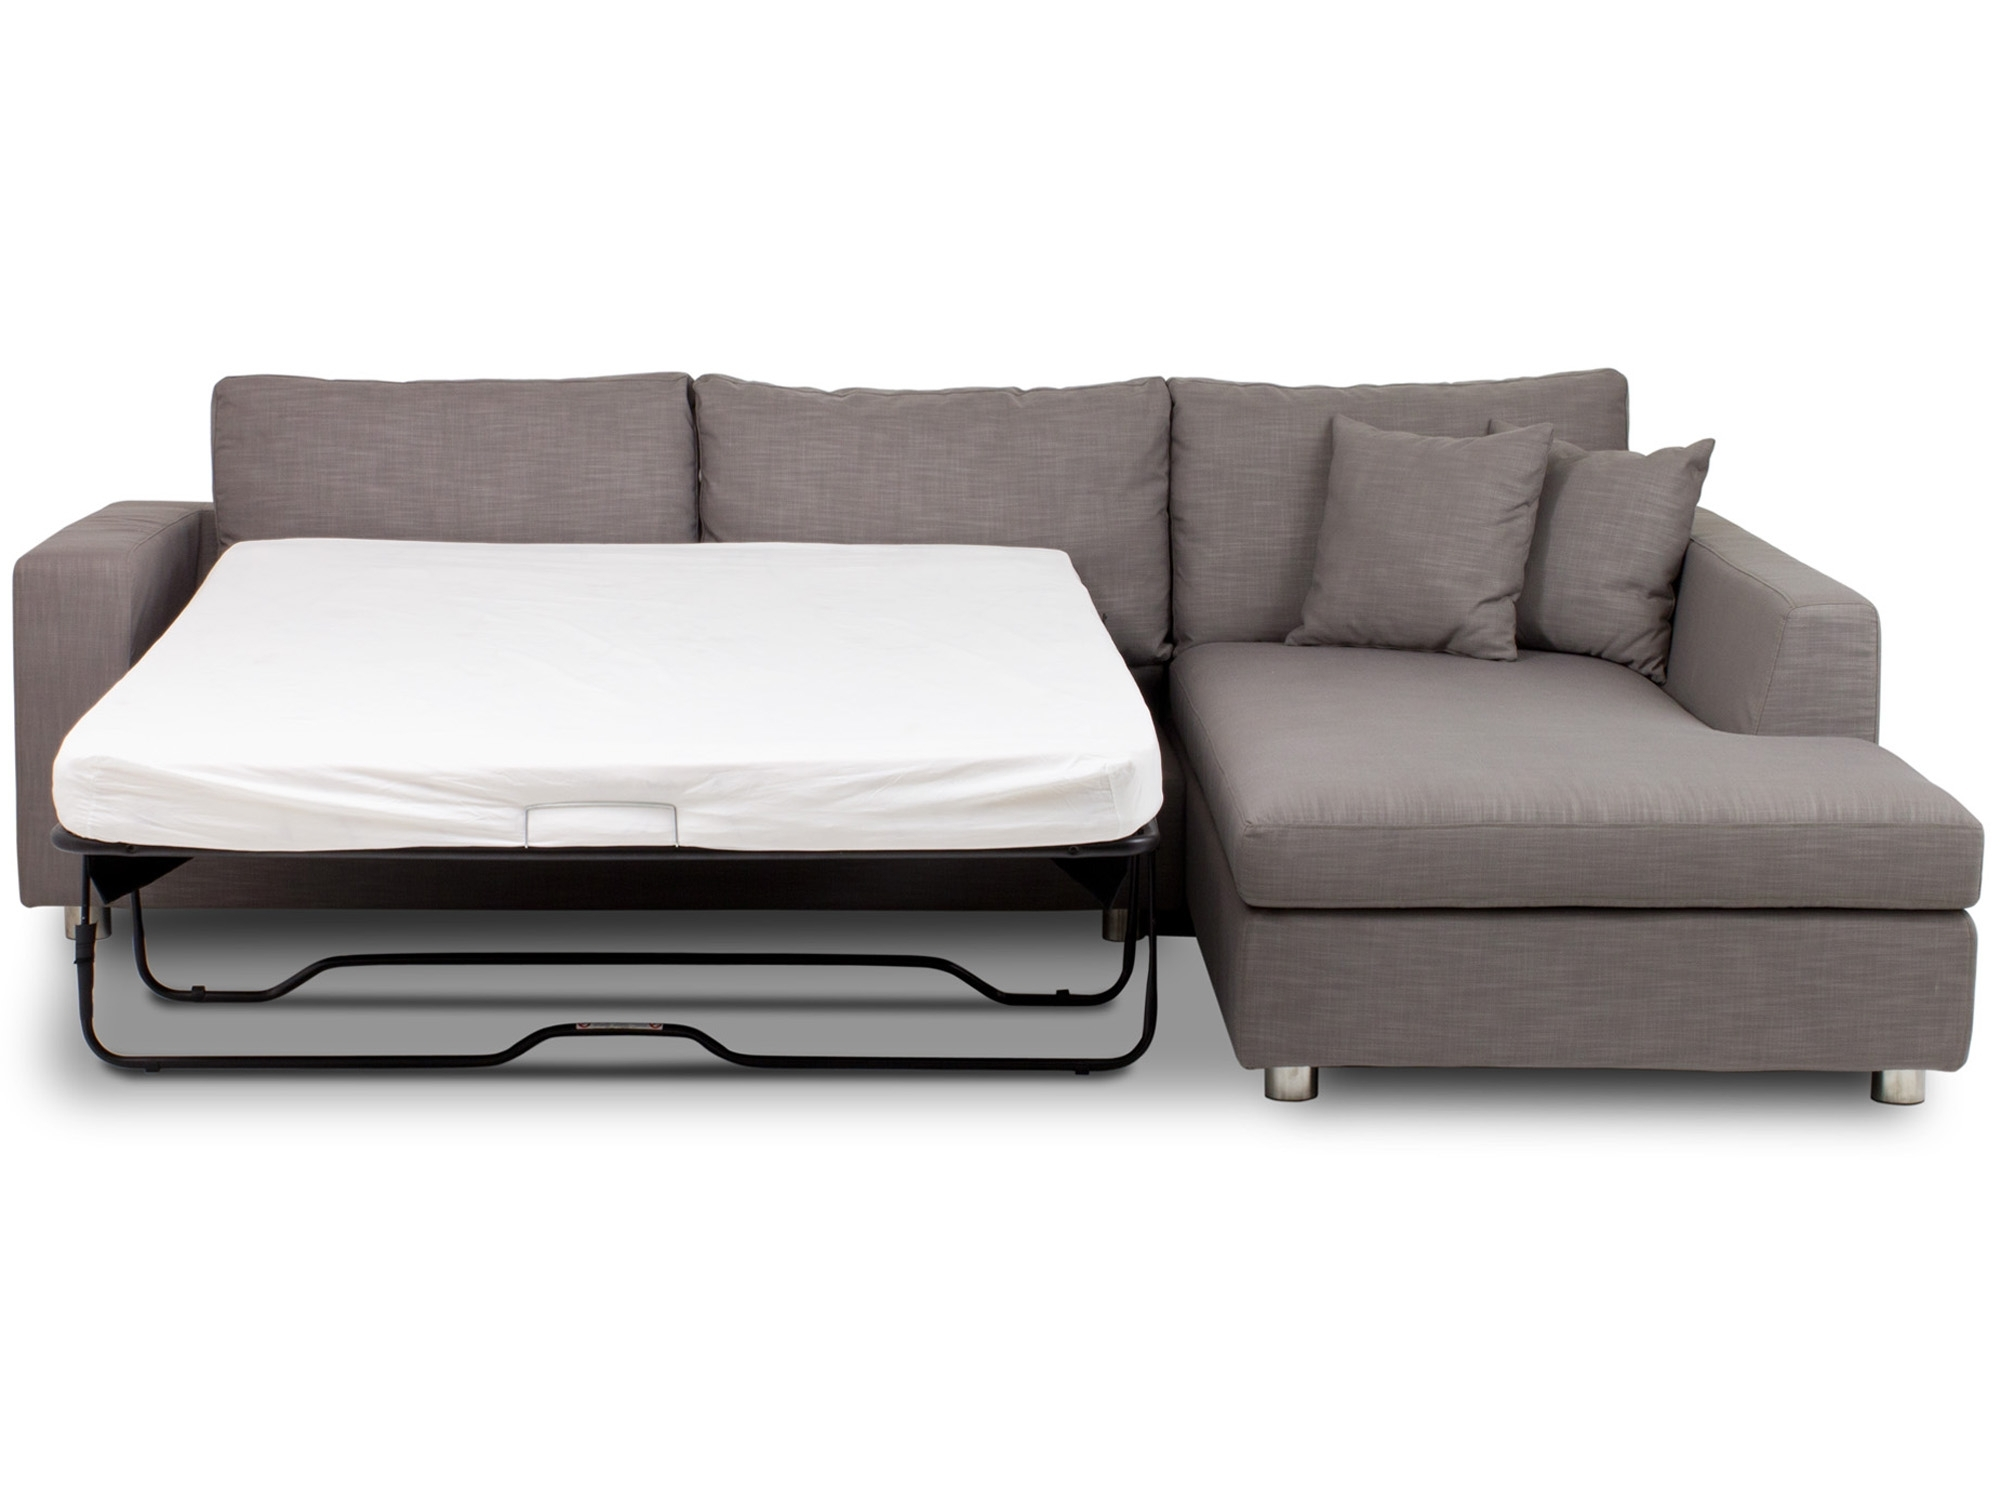 Best And Newest Chaise Beds With Mondo Storage – Corner Sofa Bed (View 4 of 15)